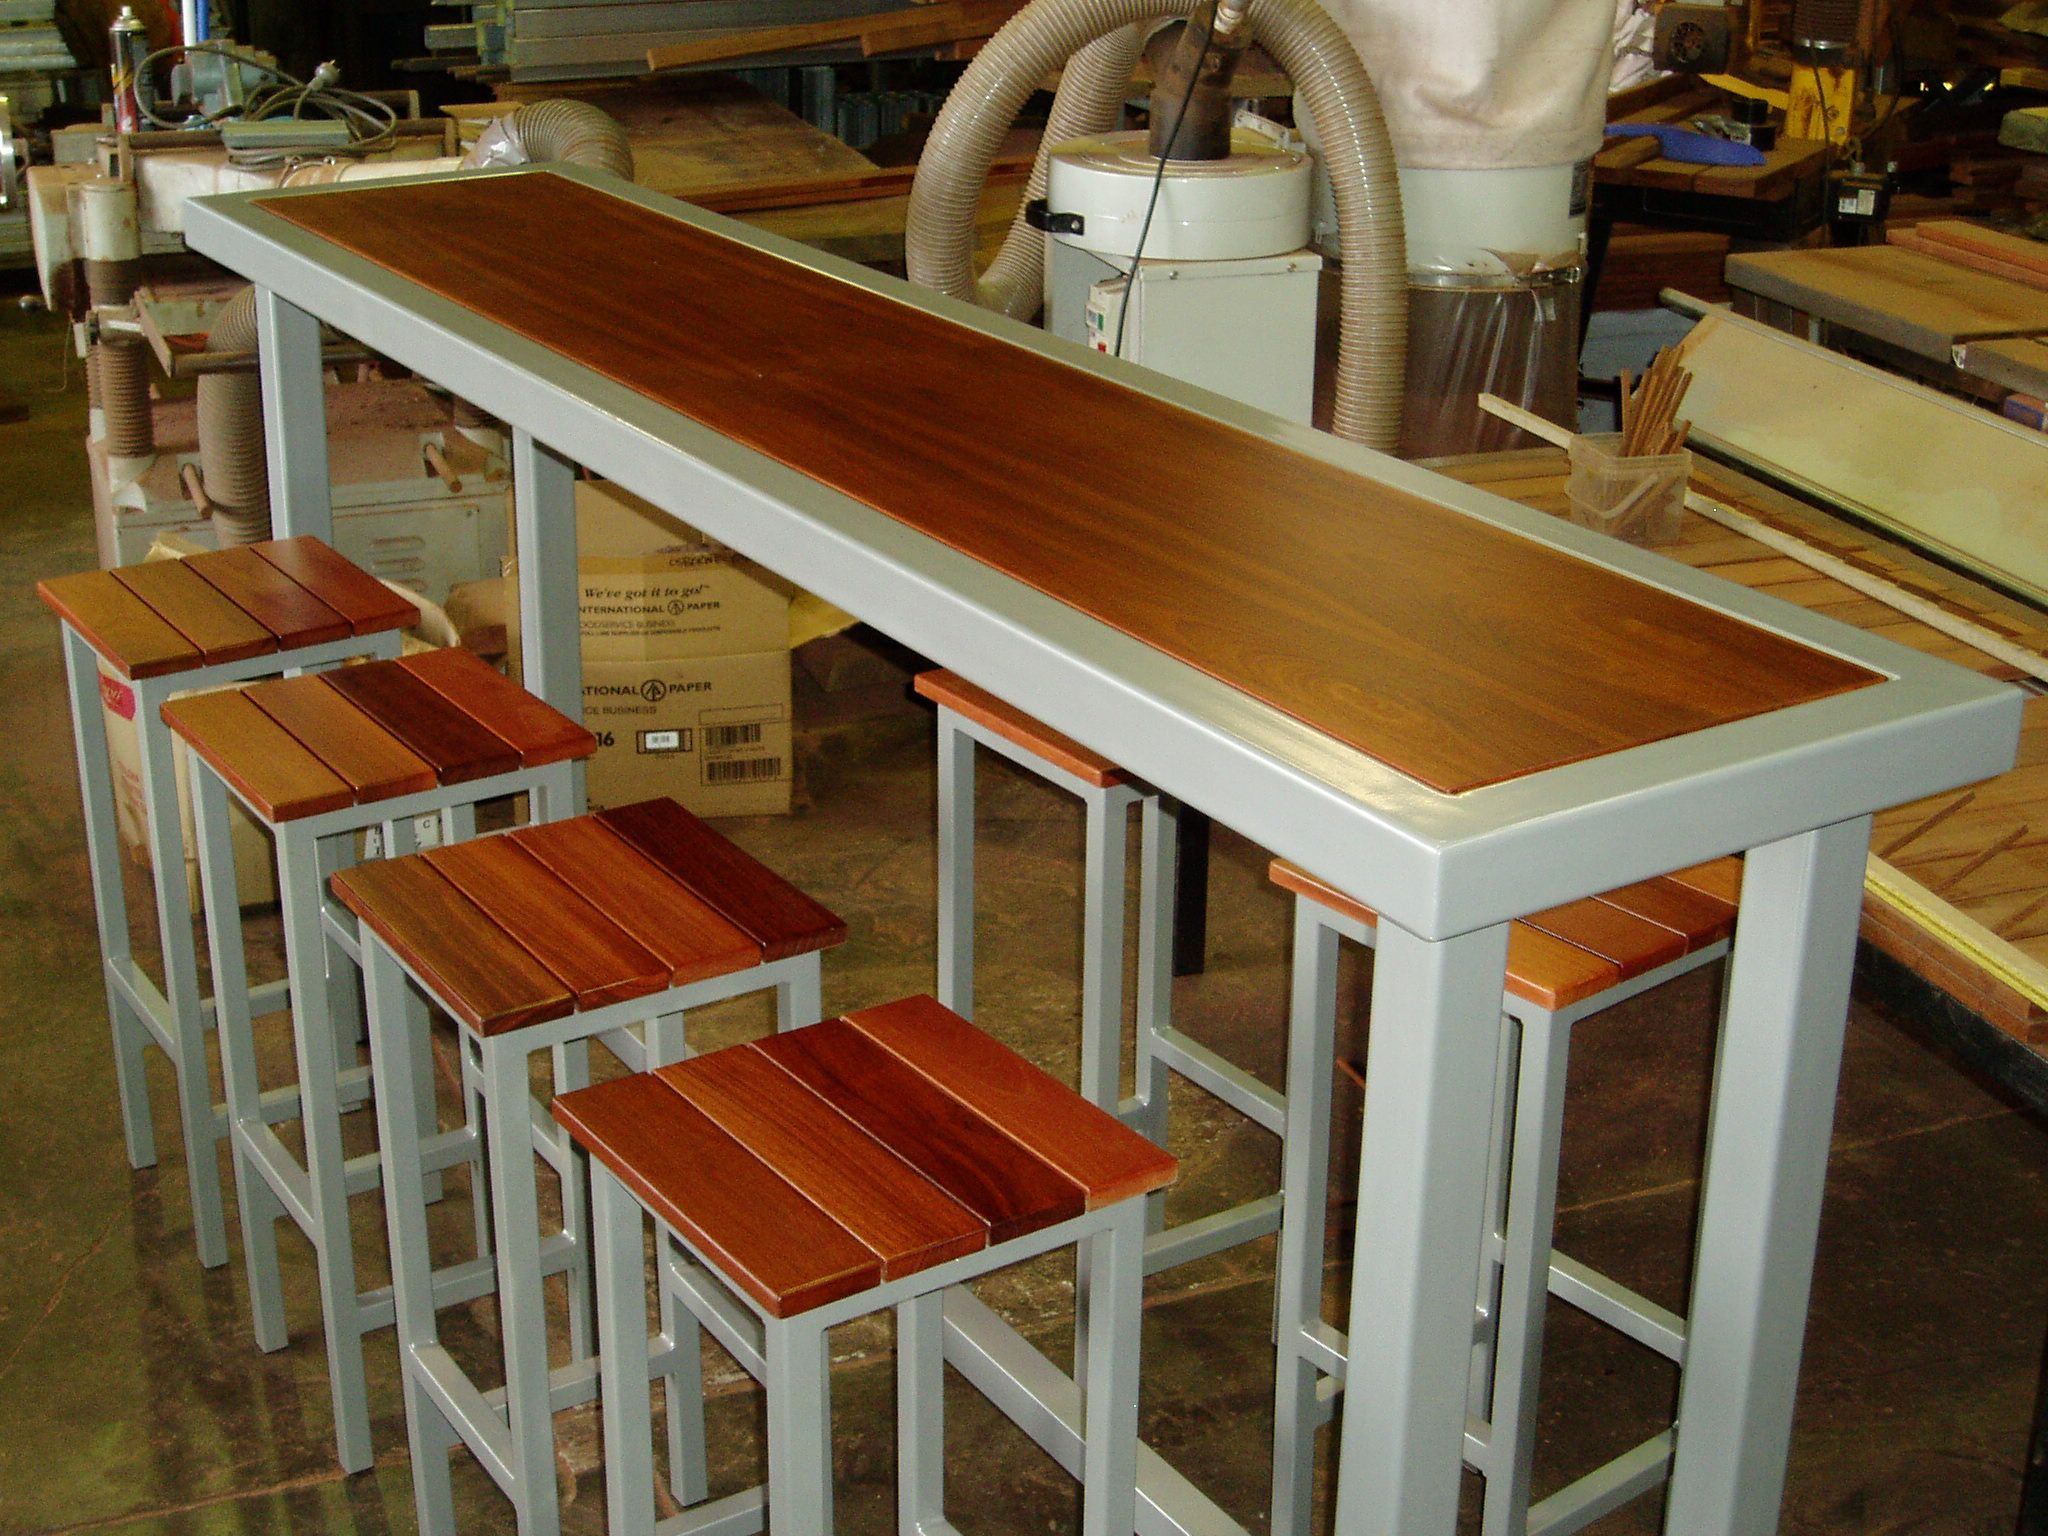 Narrow Pub Tables With Stools | Narrow, Tall Style Of Bar, Timbers Joined To